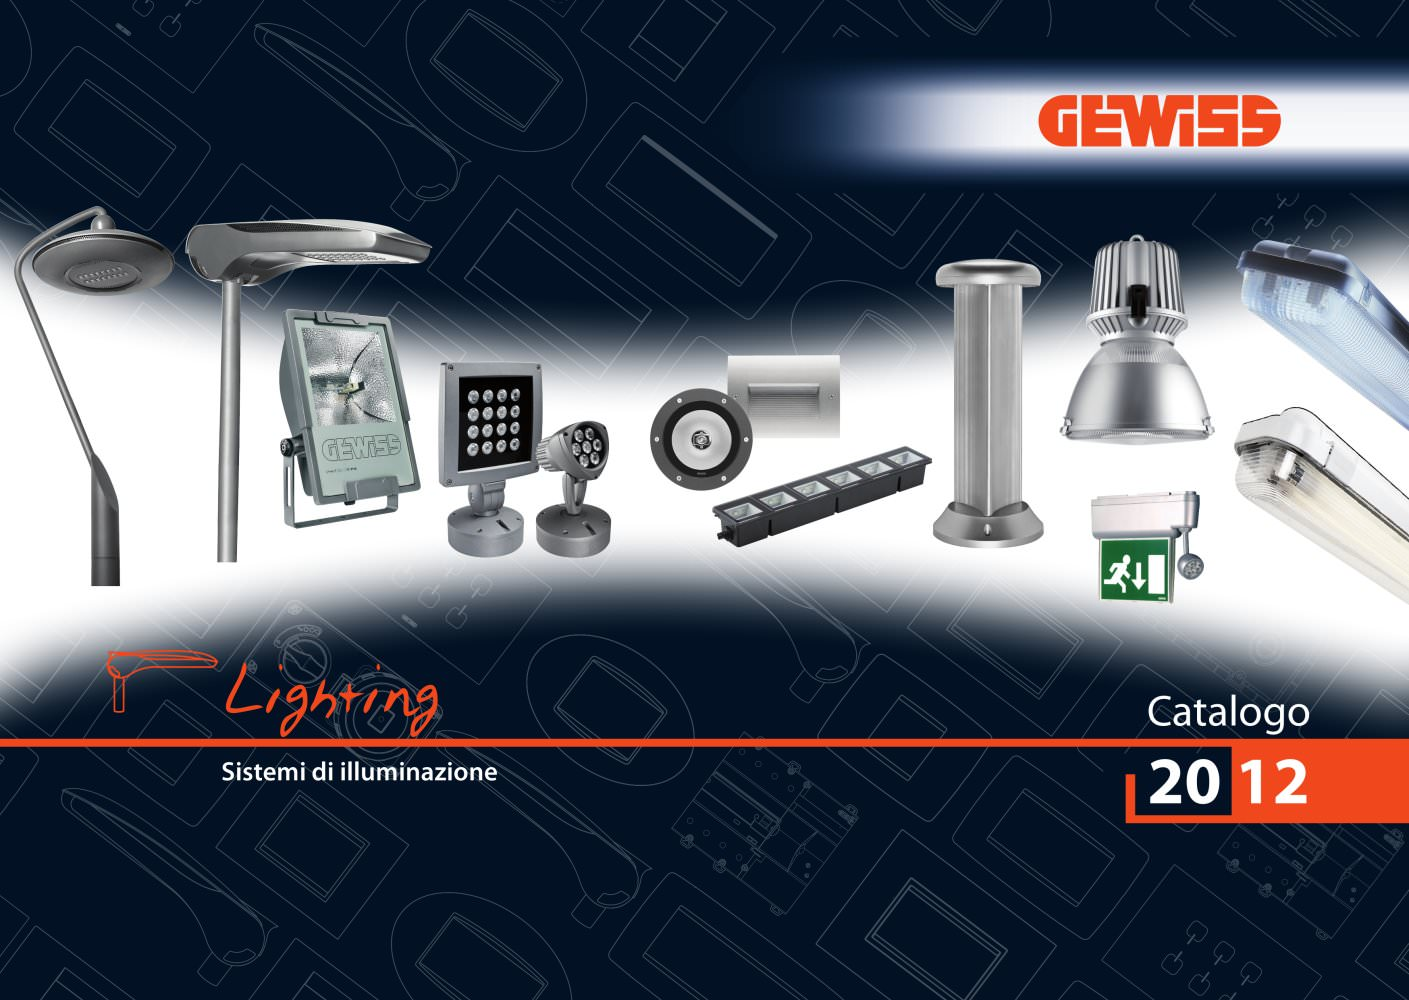 Plafoniere Da Esterno Gewiss : Lighting gewiss catalogo pdf documentazione brochure